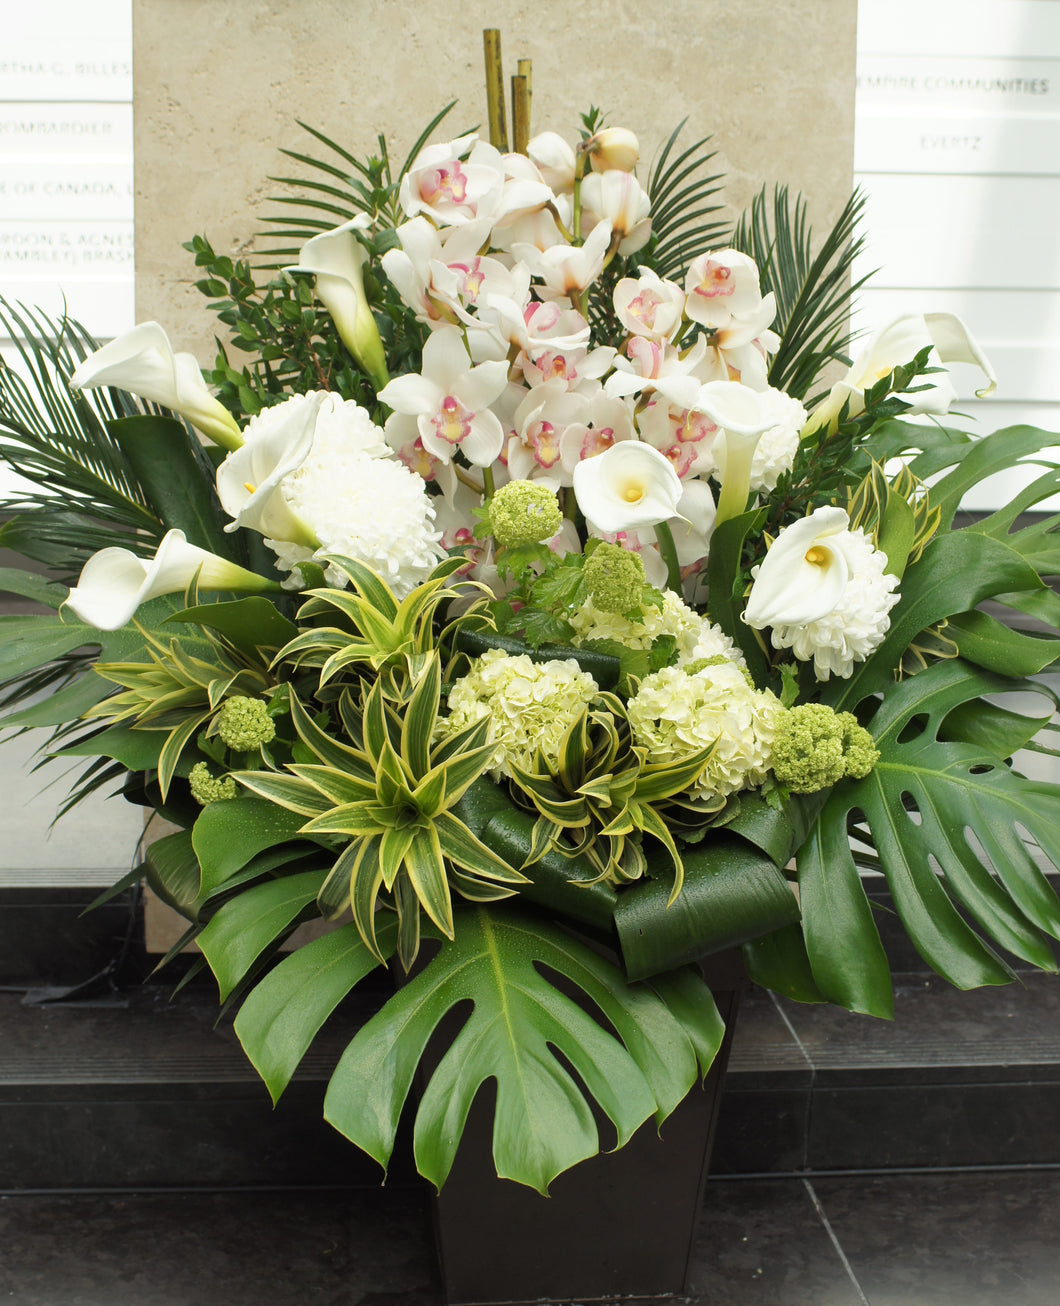 FNV15 - Modern White Cymbidium Arrangement - Flowerplustoronto